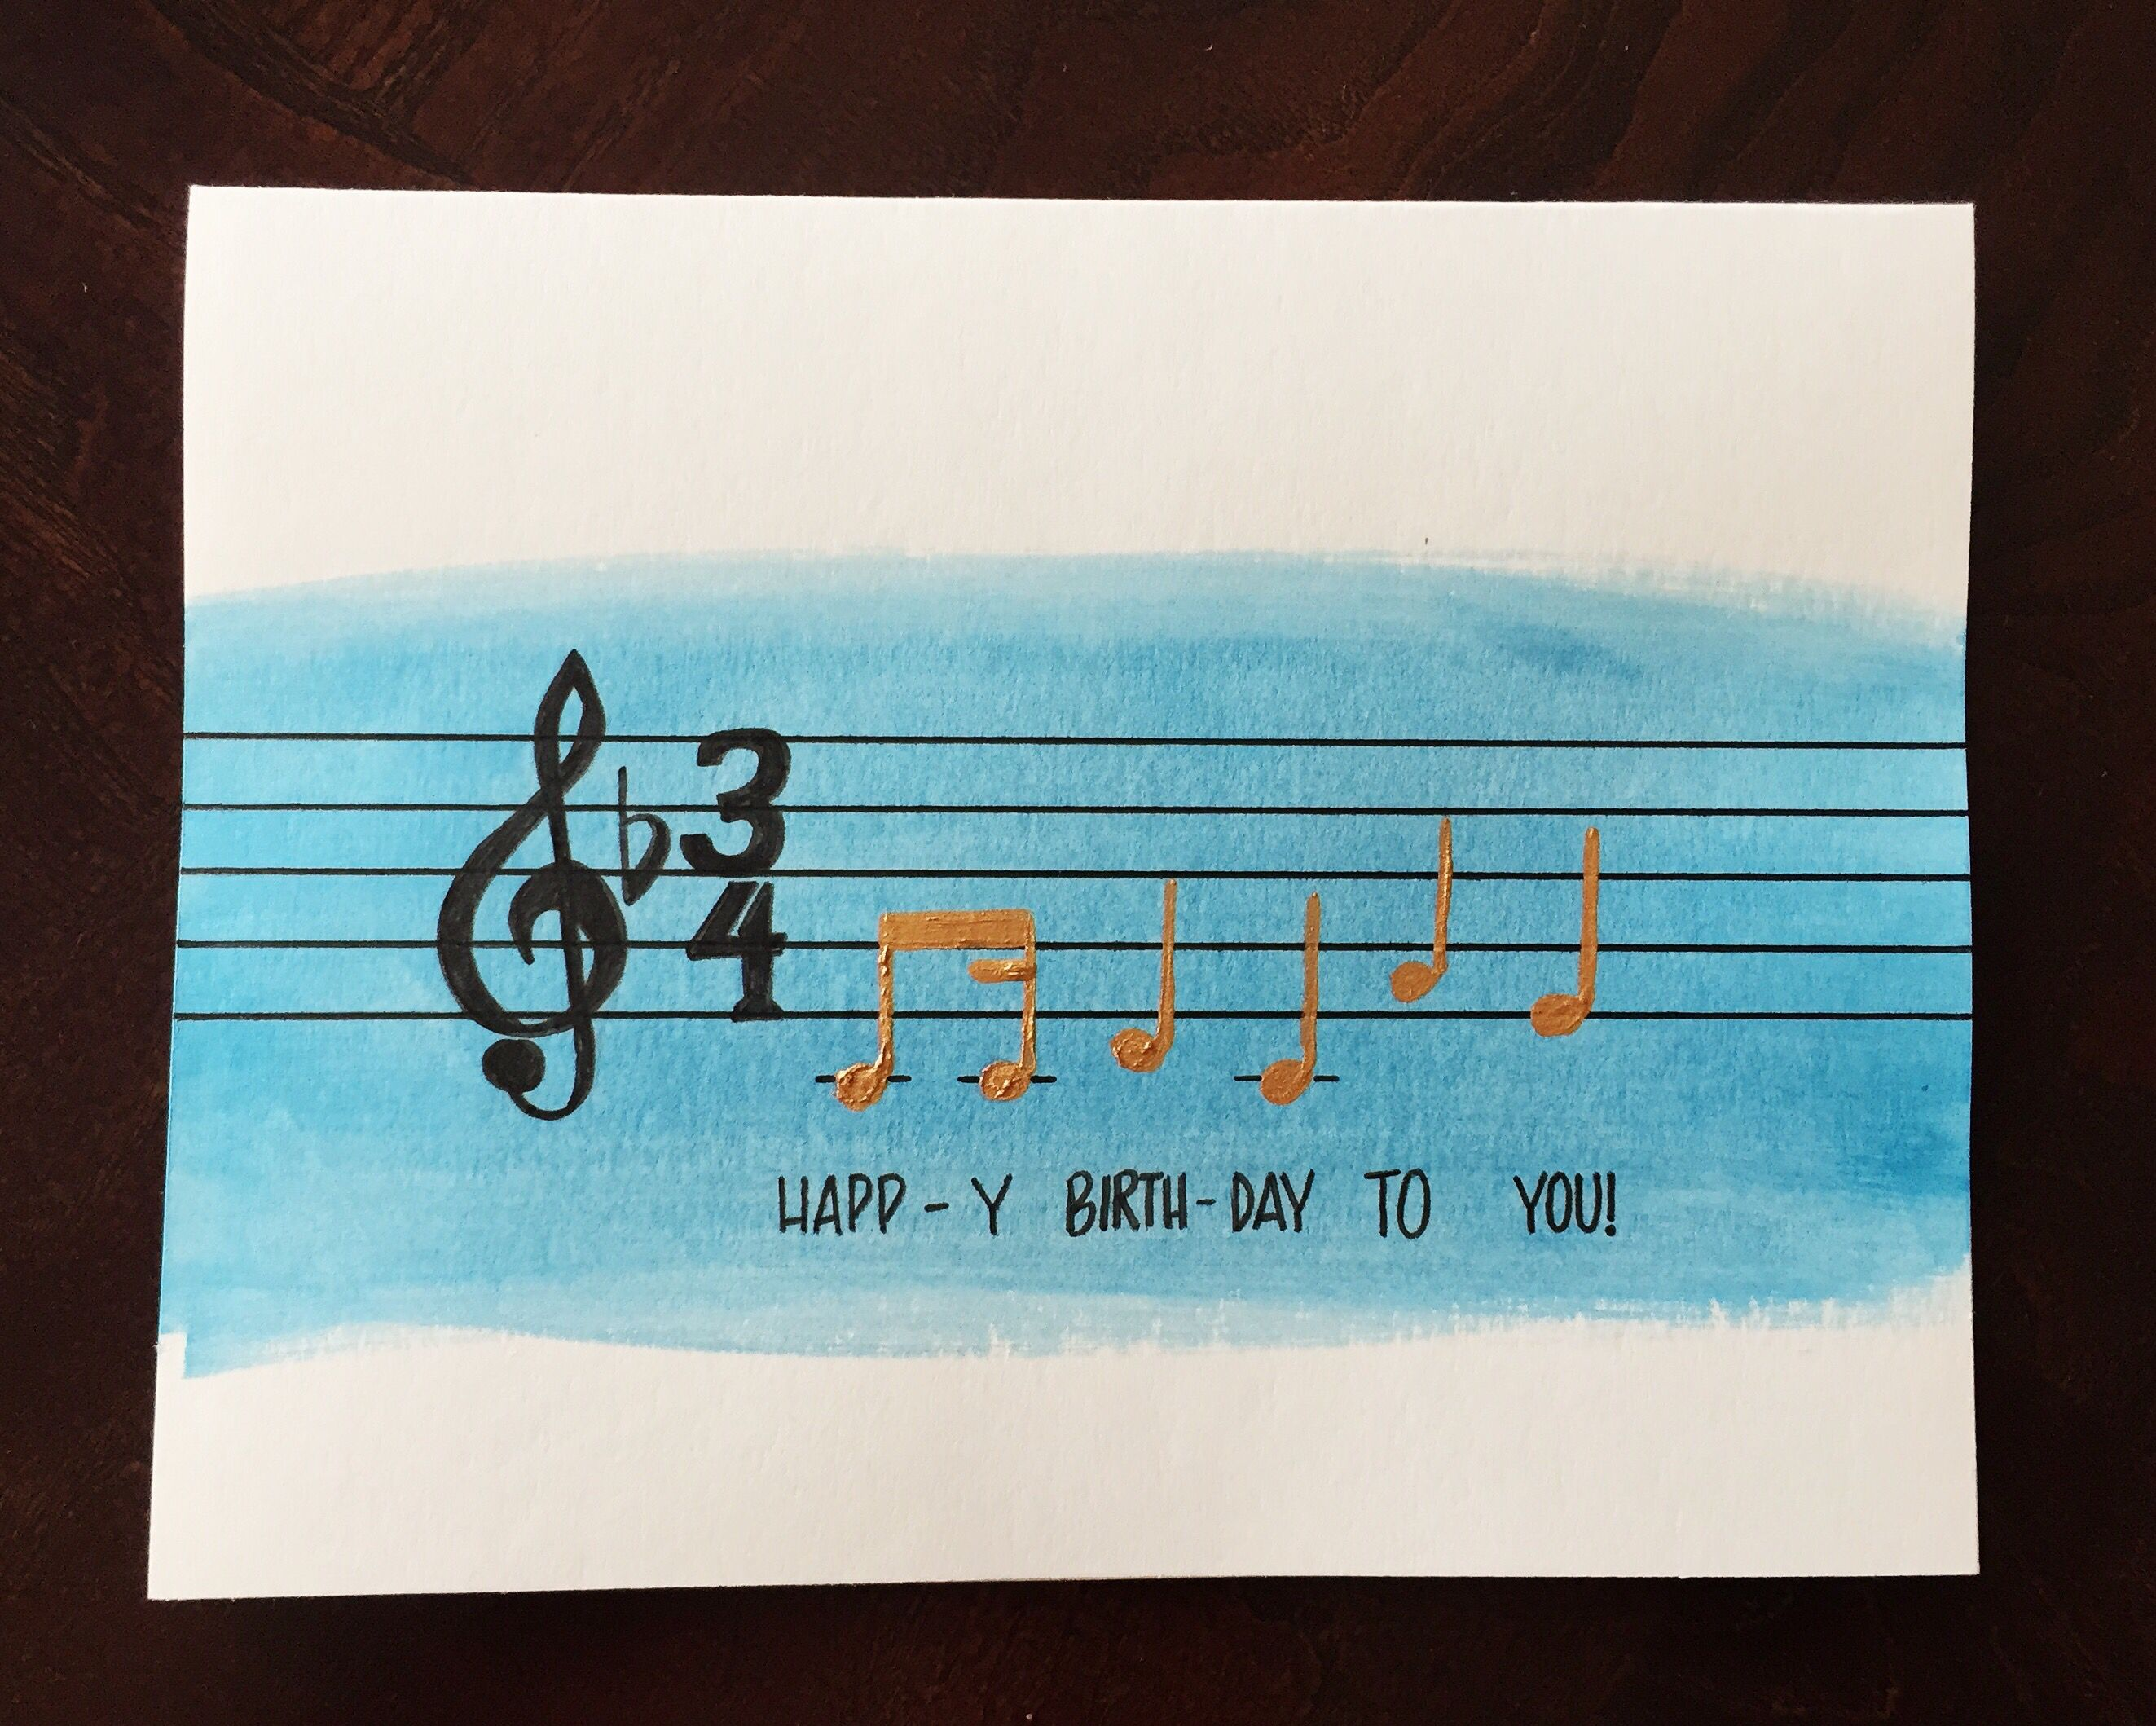 Birthday Cards Notes ~ Happy birthday to you birthday card metallic blue music notes